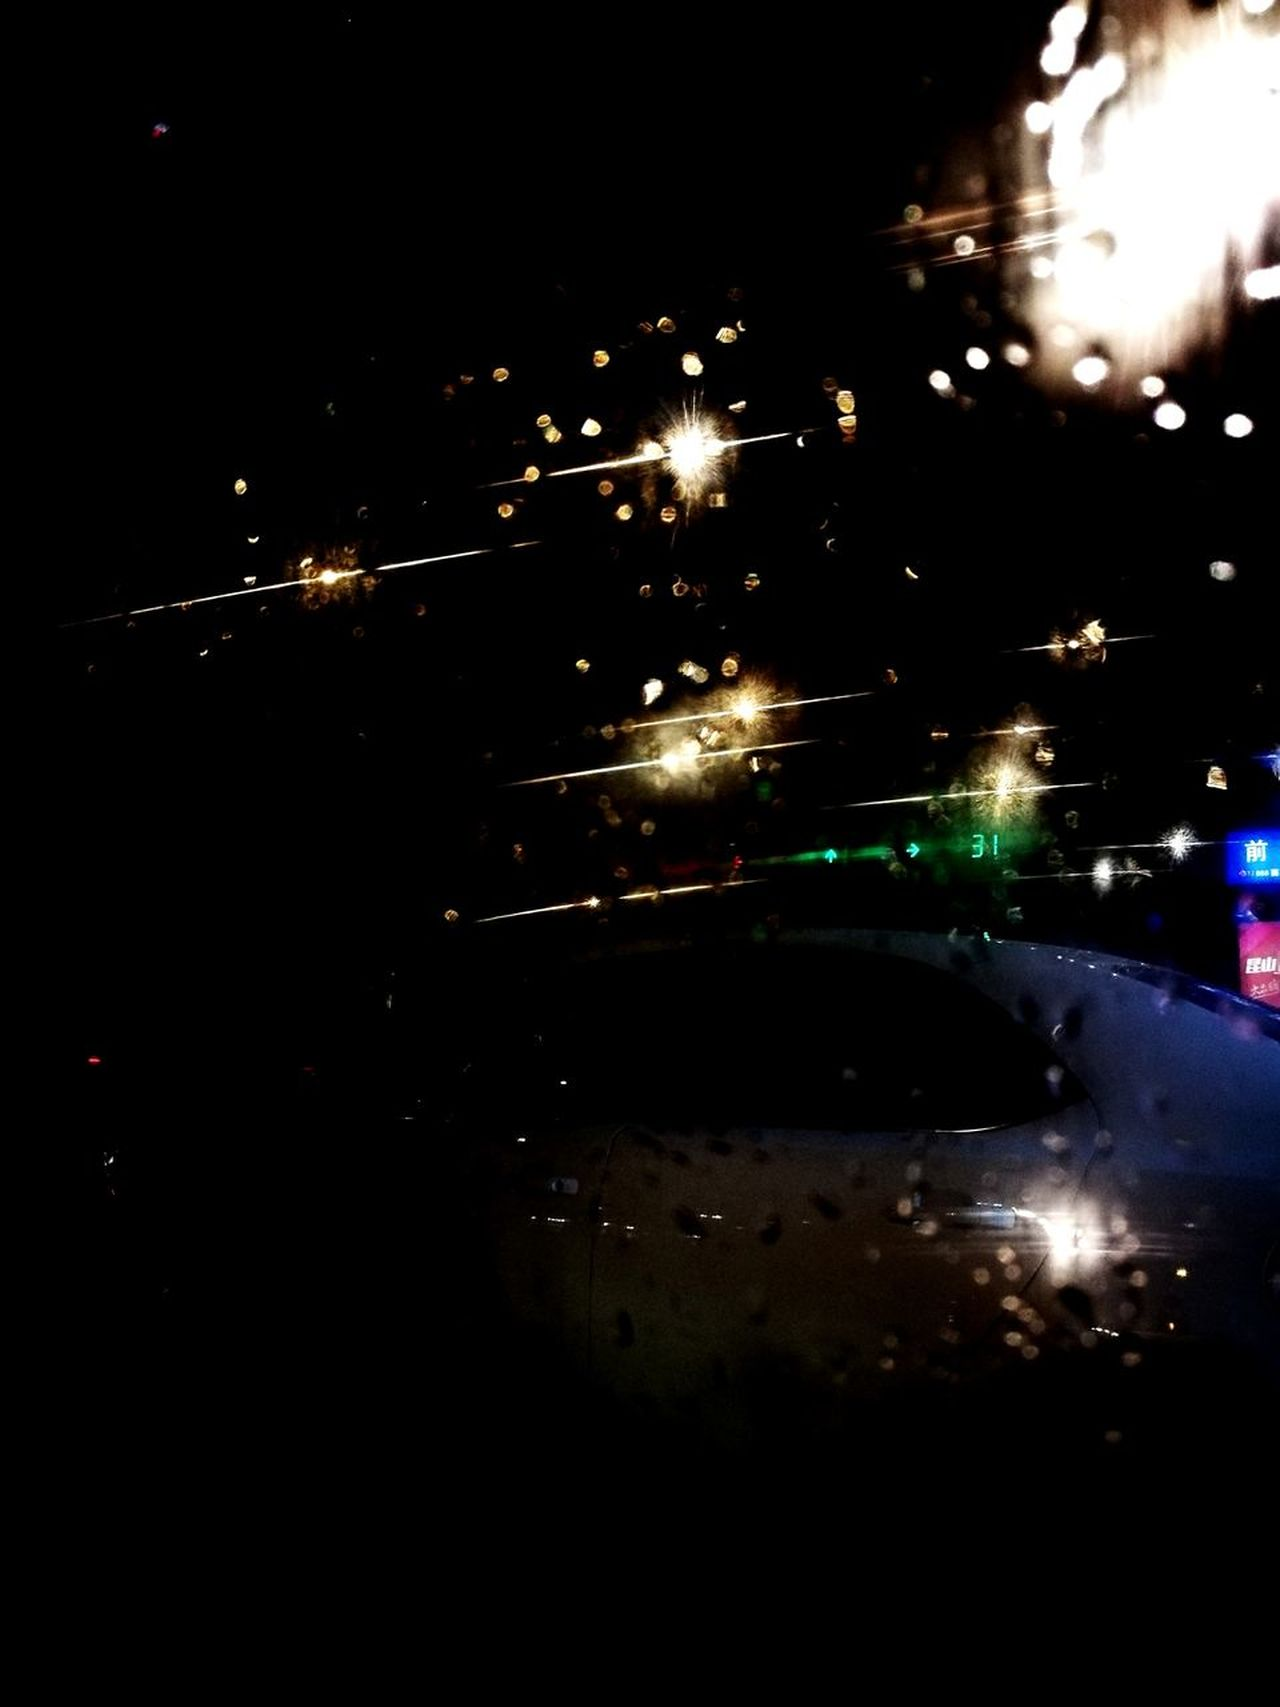 Car Transportation Night Vehicle Interior Smoke - Physical Structure Close-up Outdoors No People